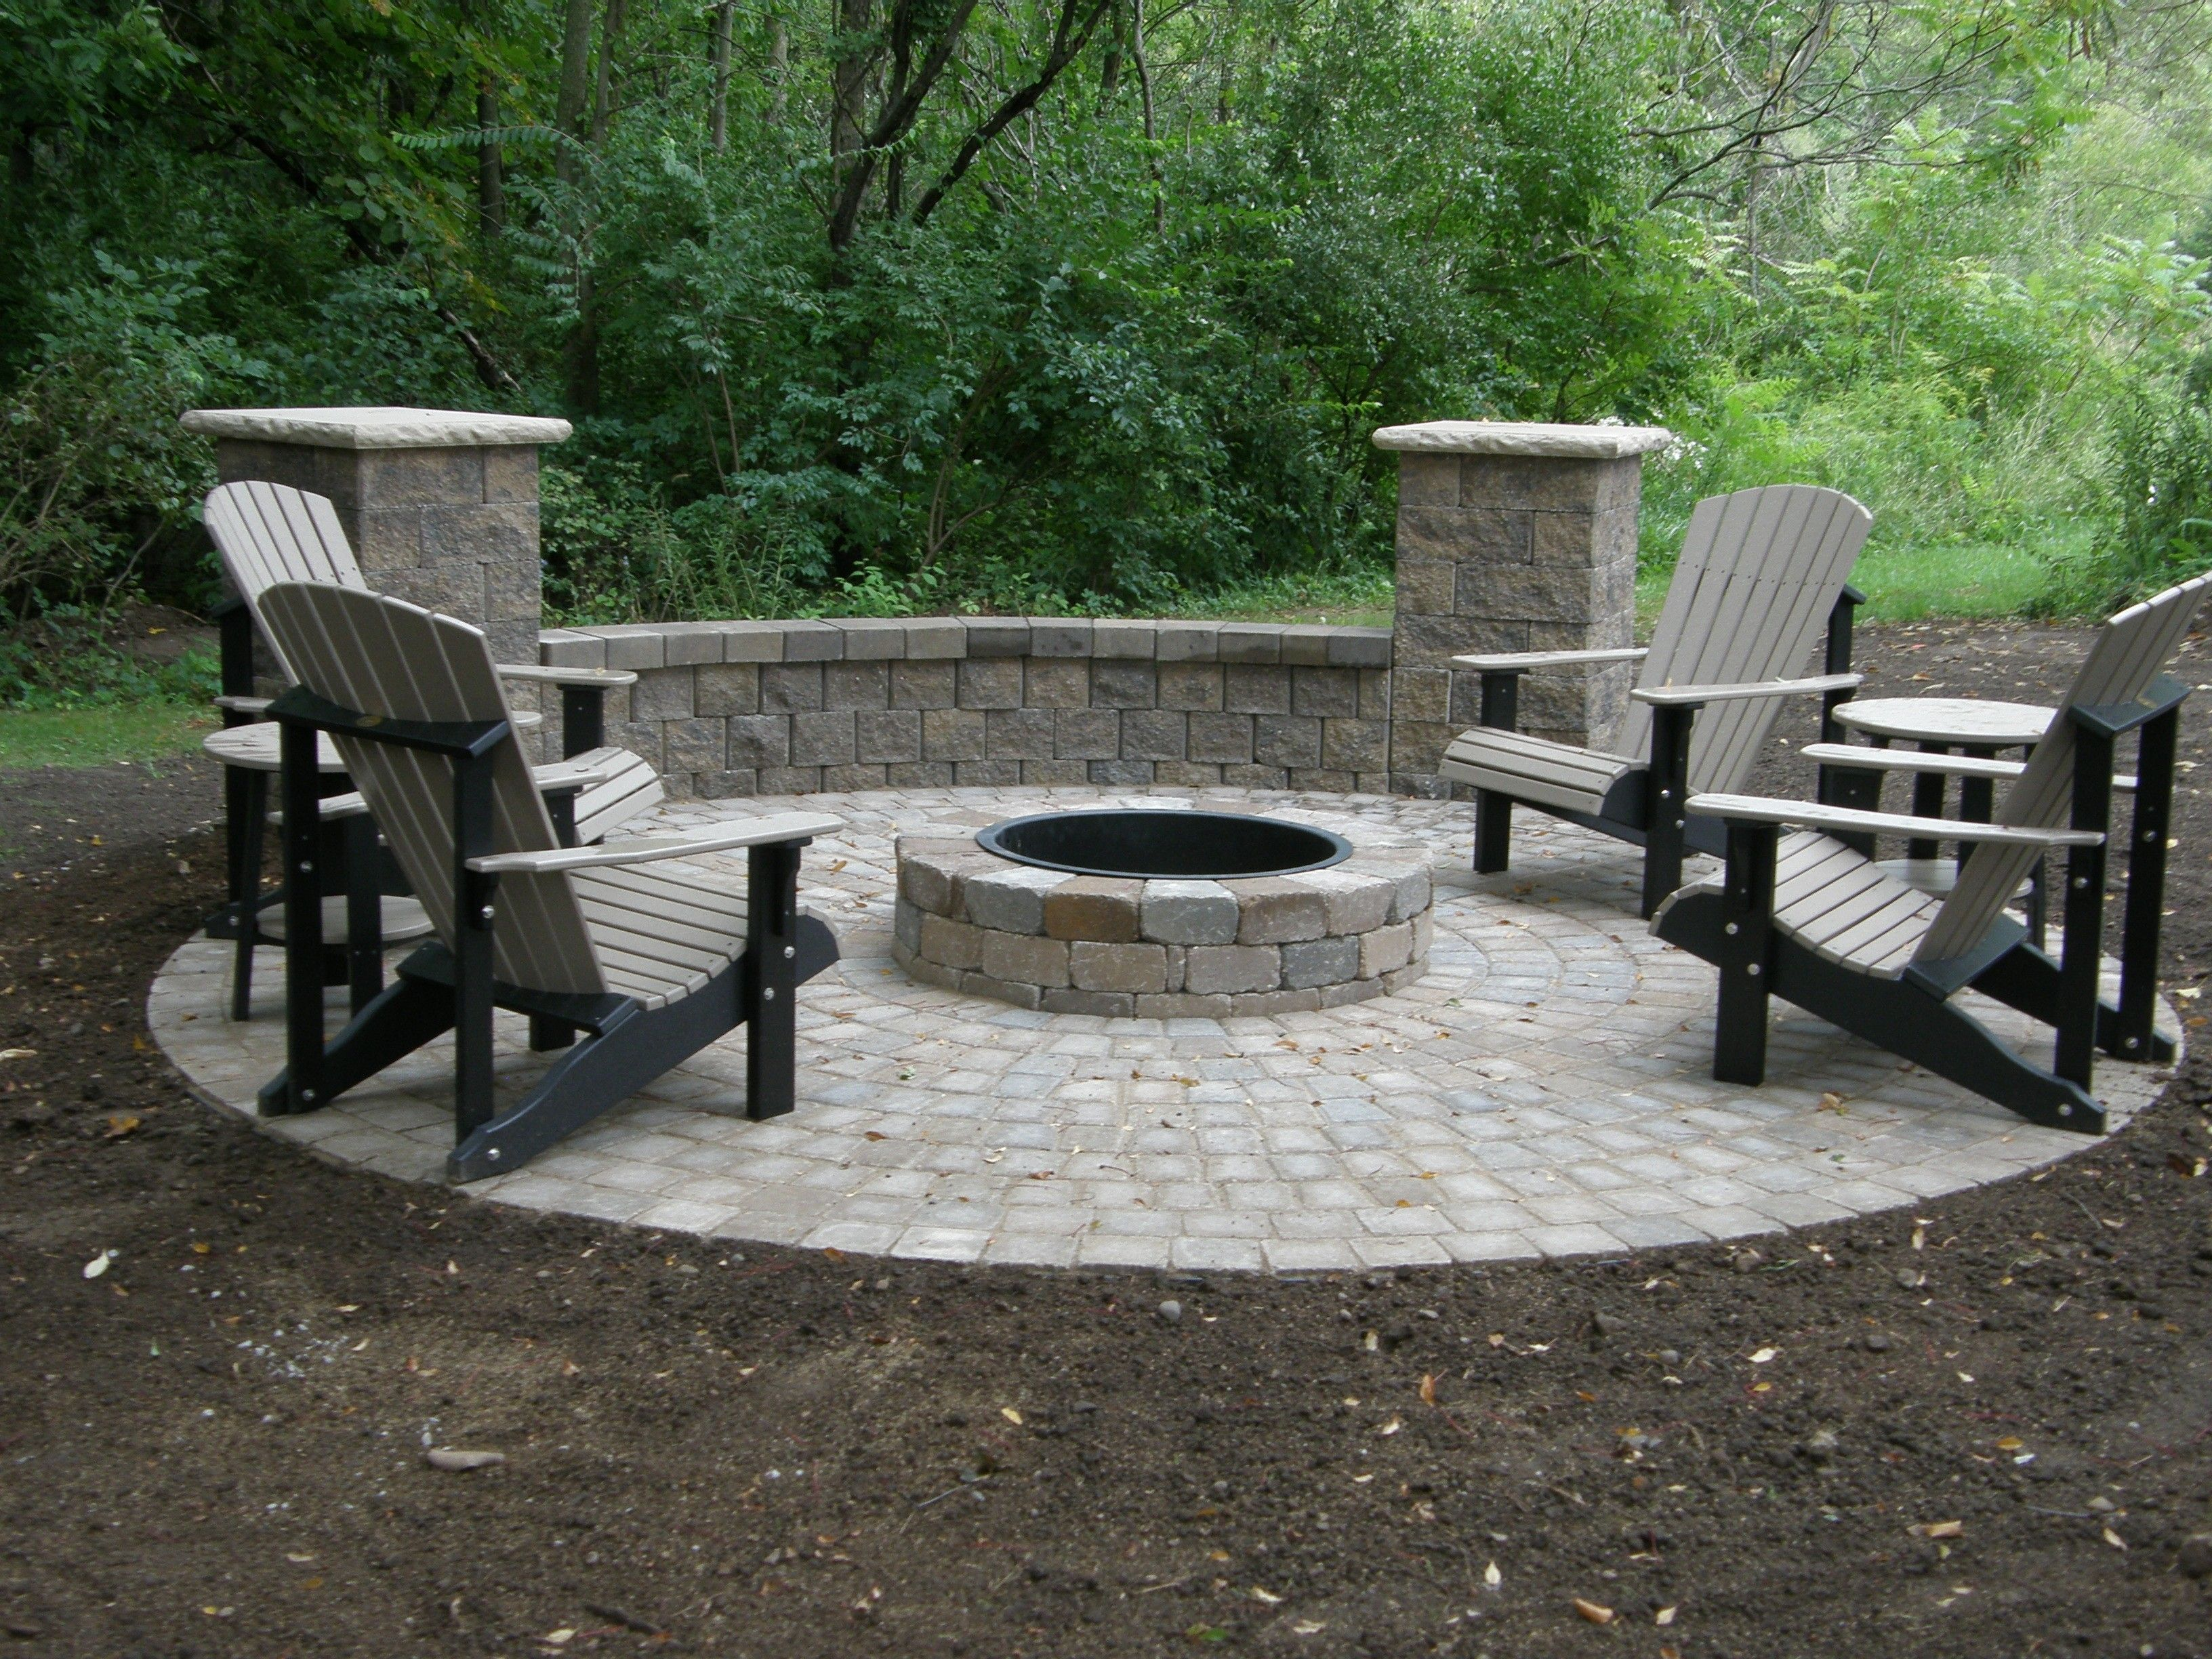 Circular paver patio we assume this would increase cost